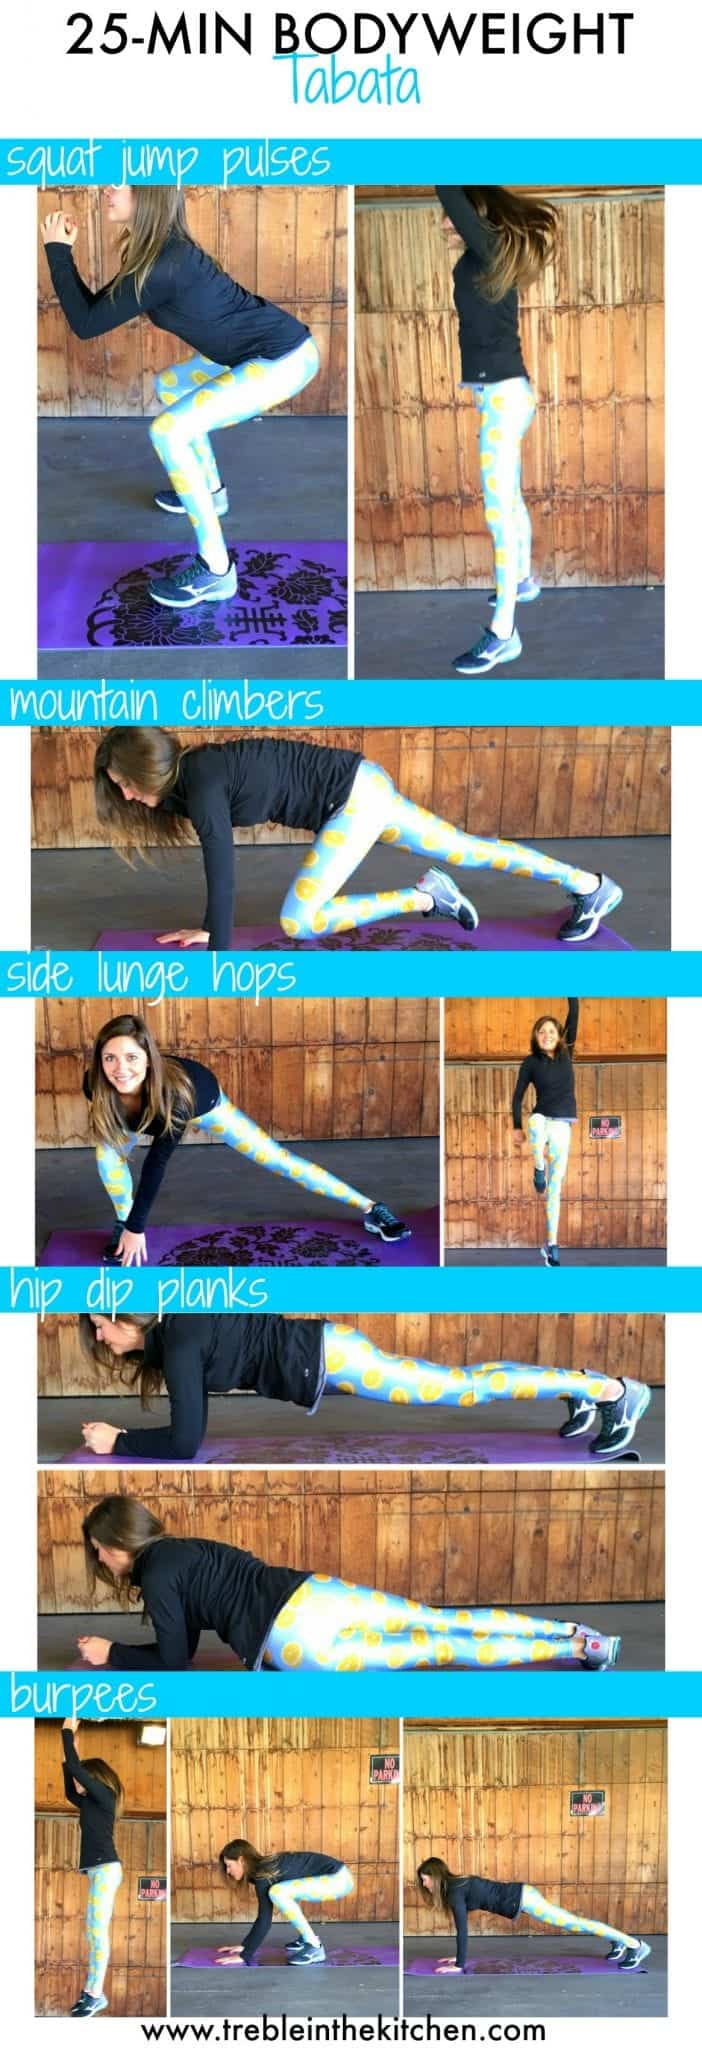 25 min tabata total body workout from treble in the kitchen